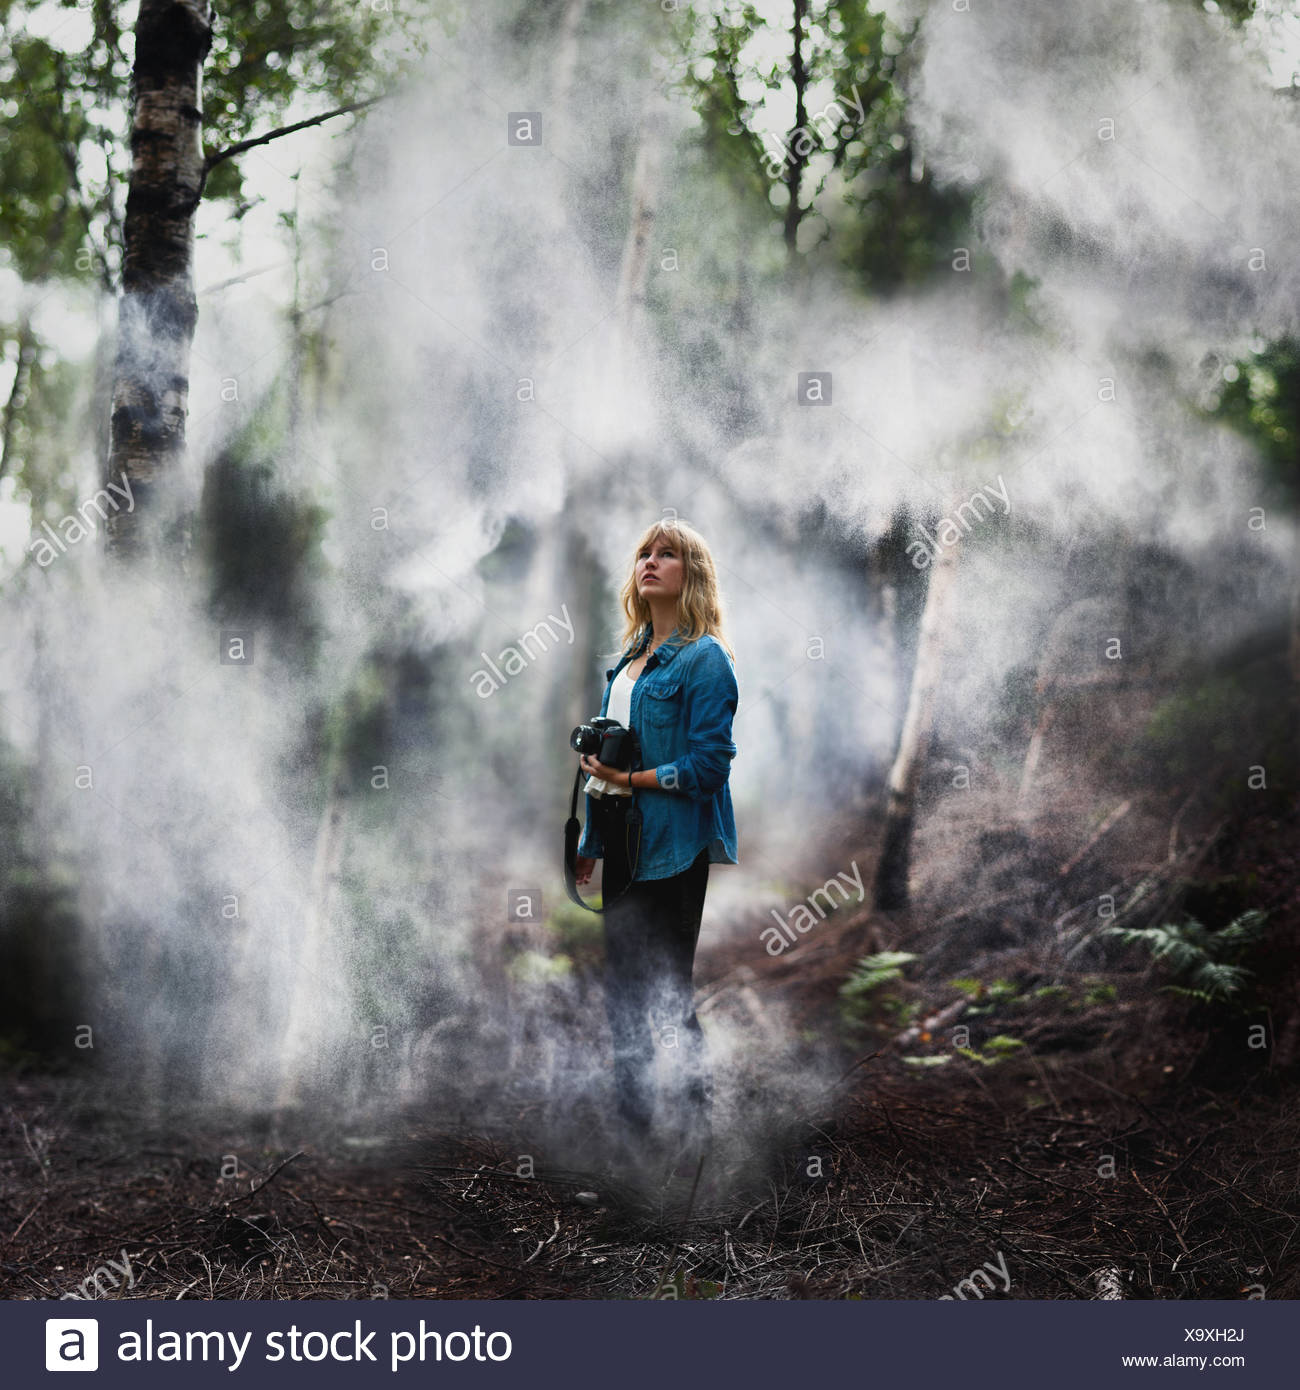 Woman With Camera In A Misty Forest - Stock Image